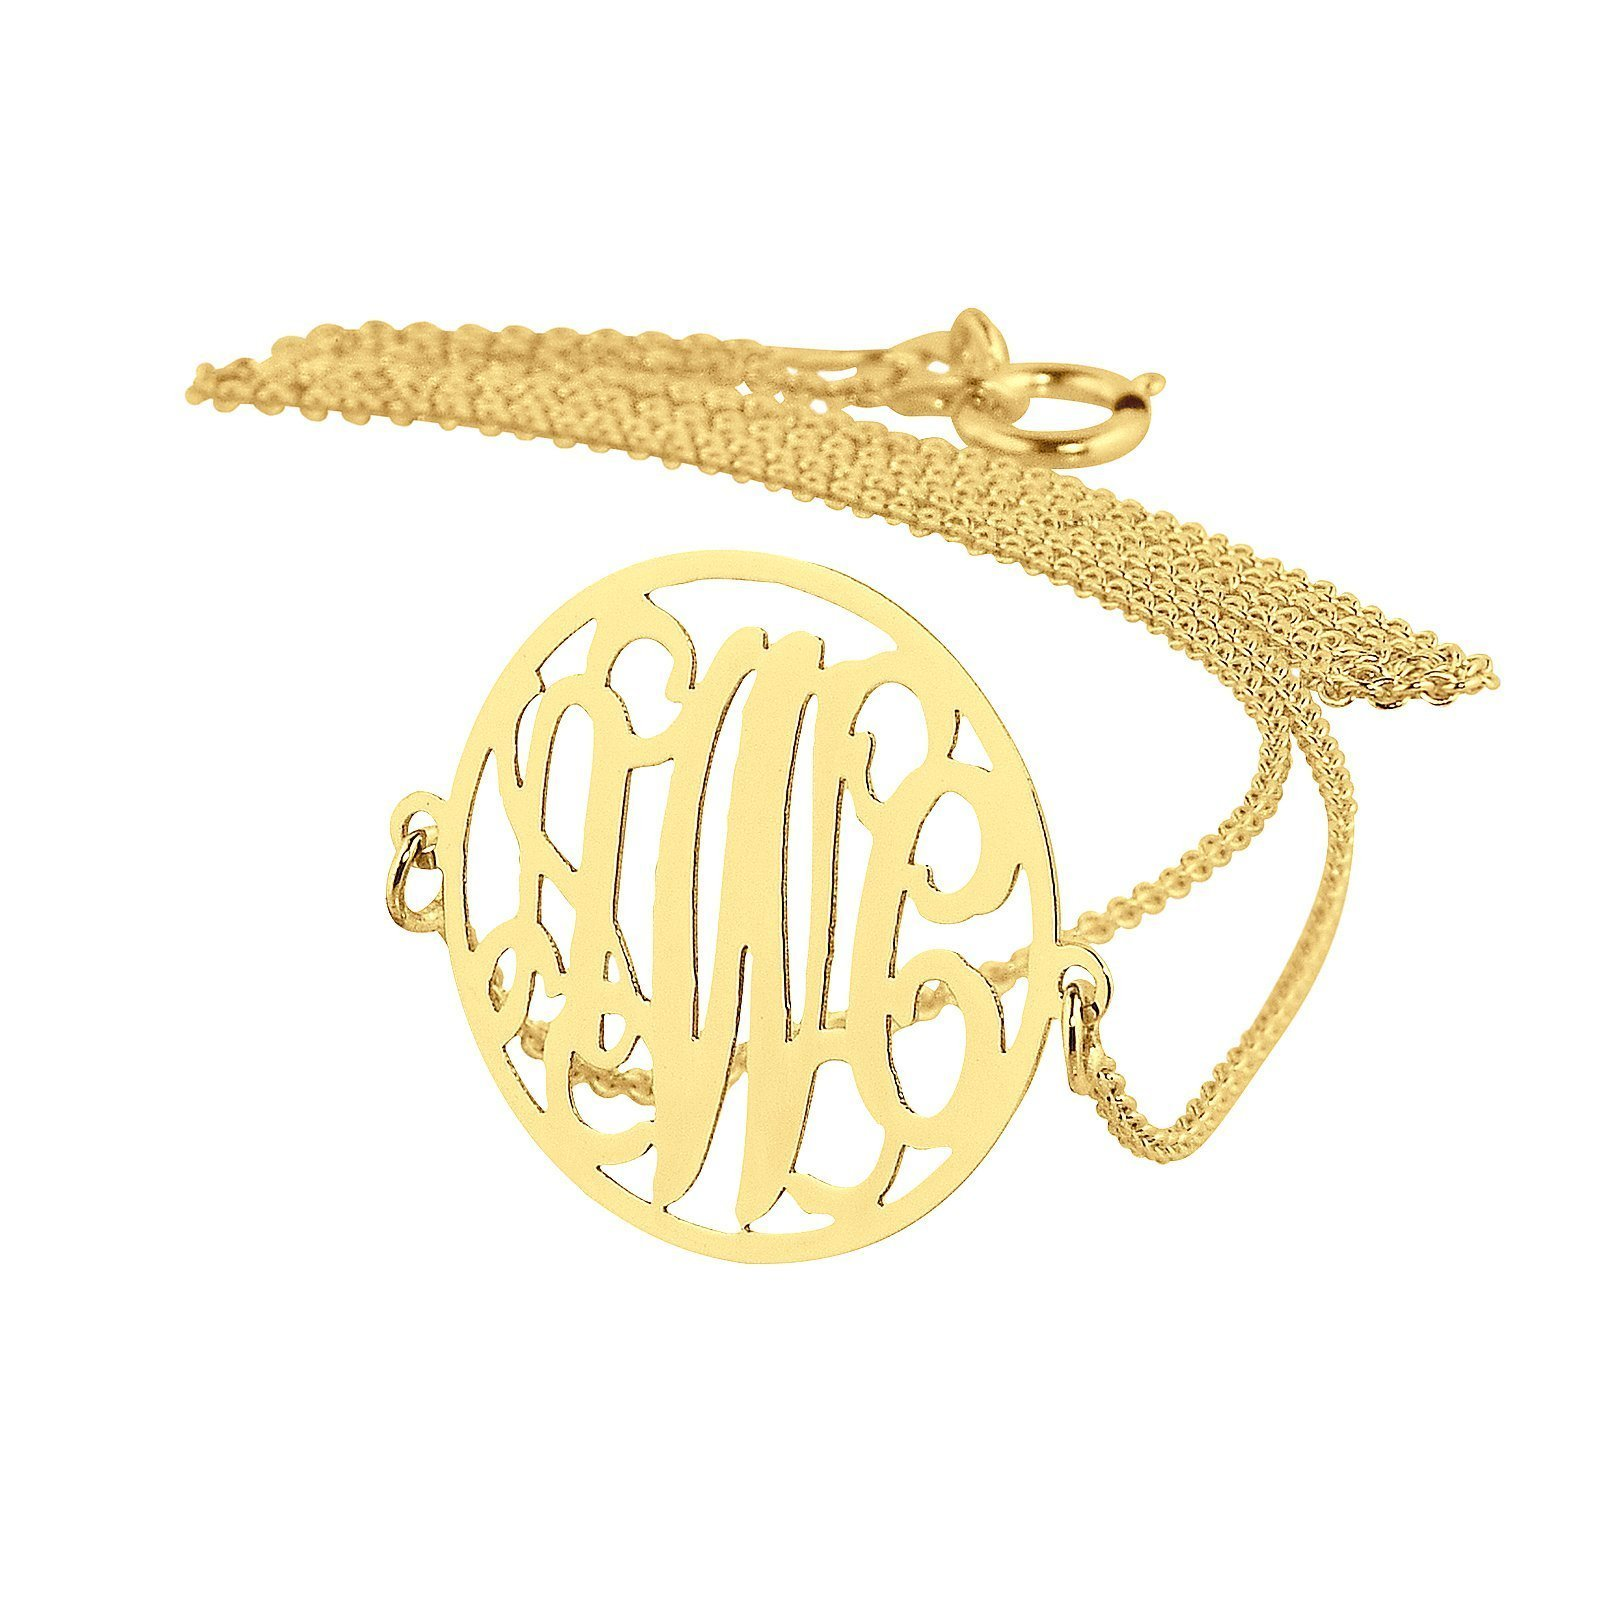 3 Initials Sideway Circle Monogram Necklace 3/4 Inch Solid Gold 10K or 14K Fine Jewelry GM41E